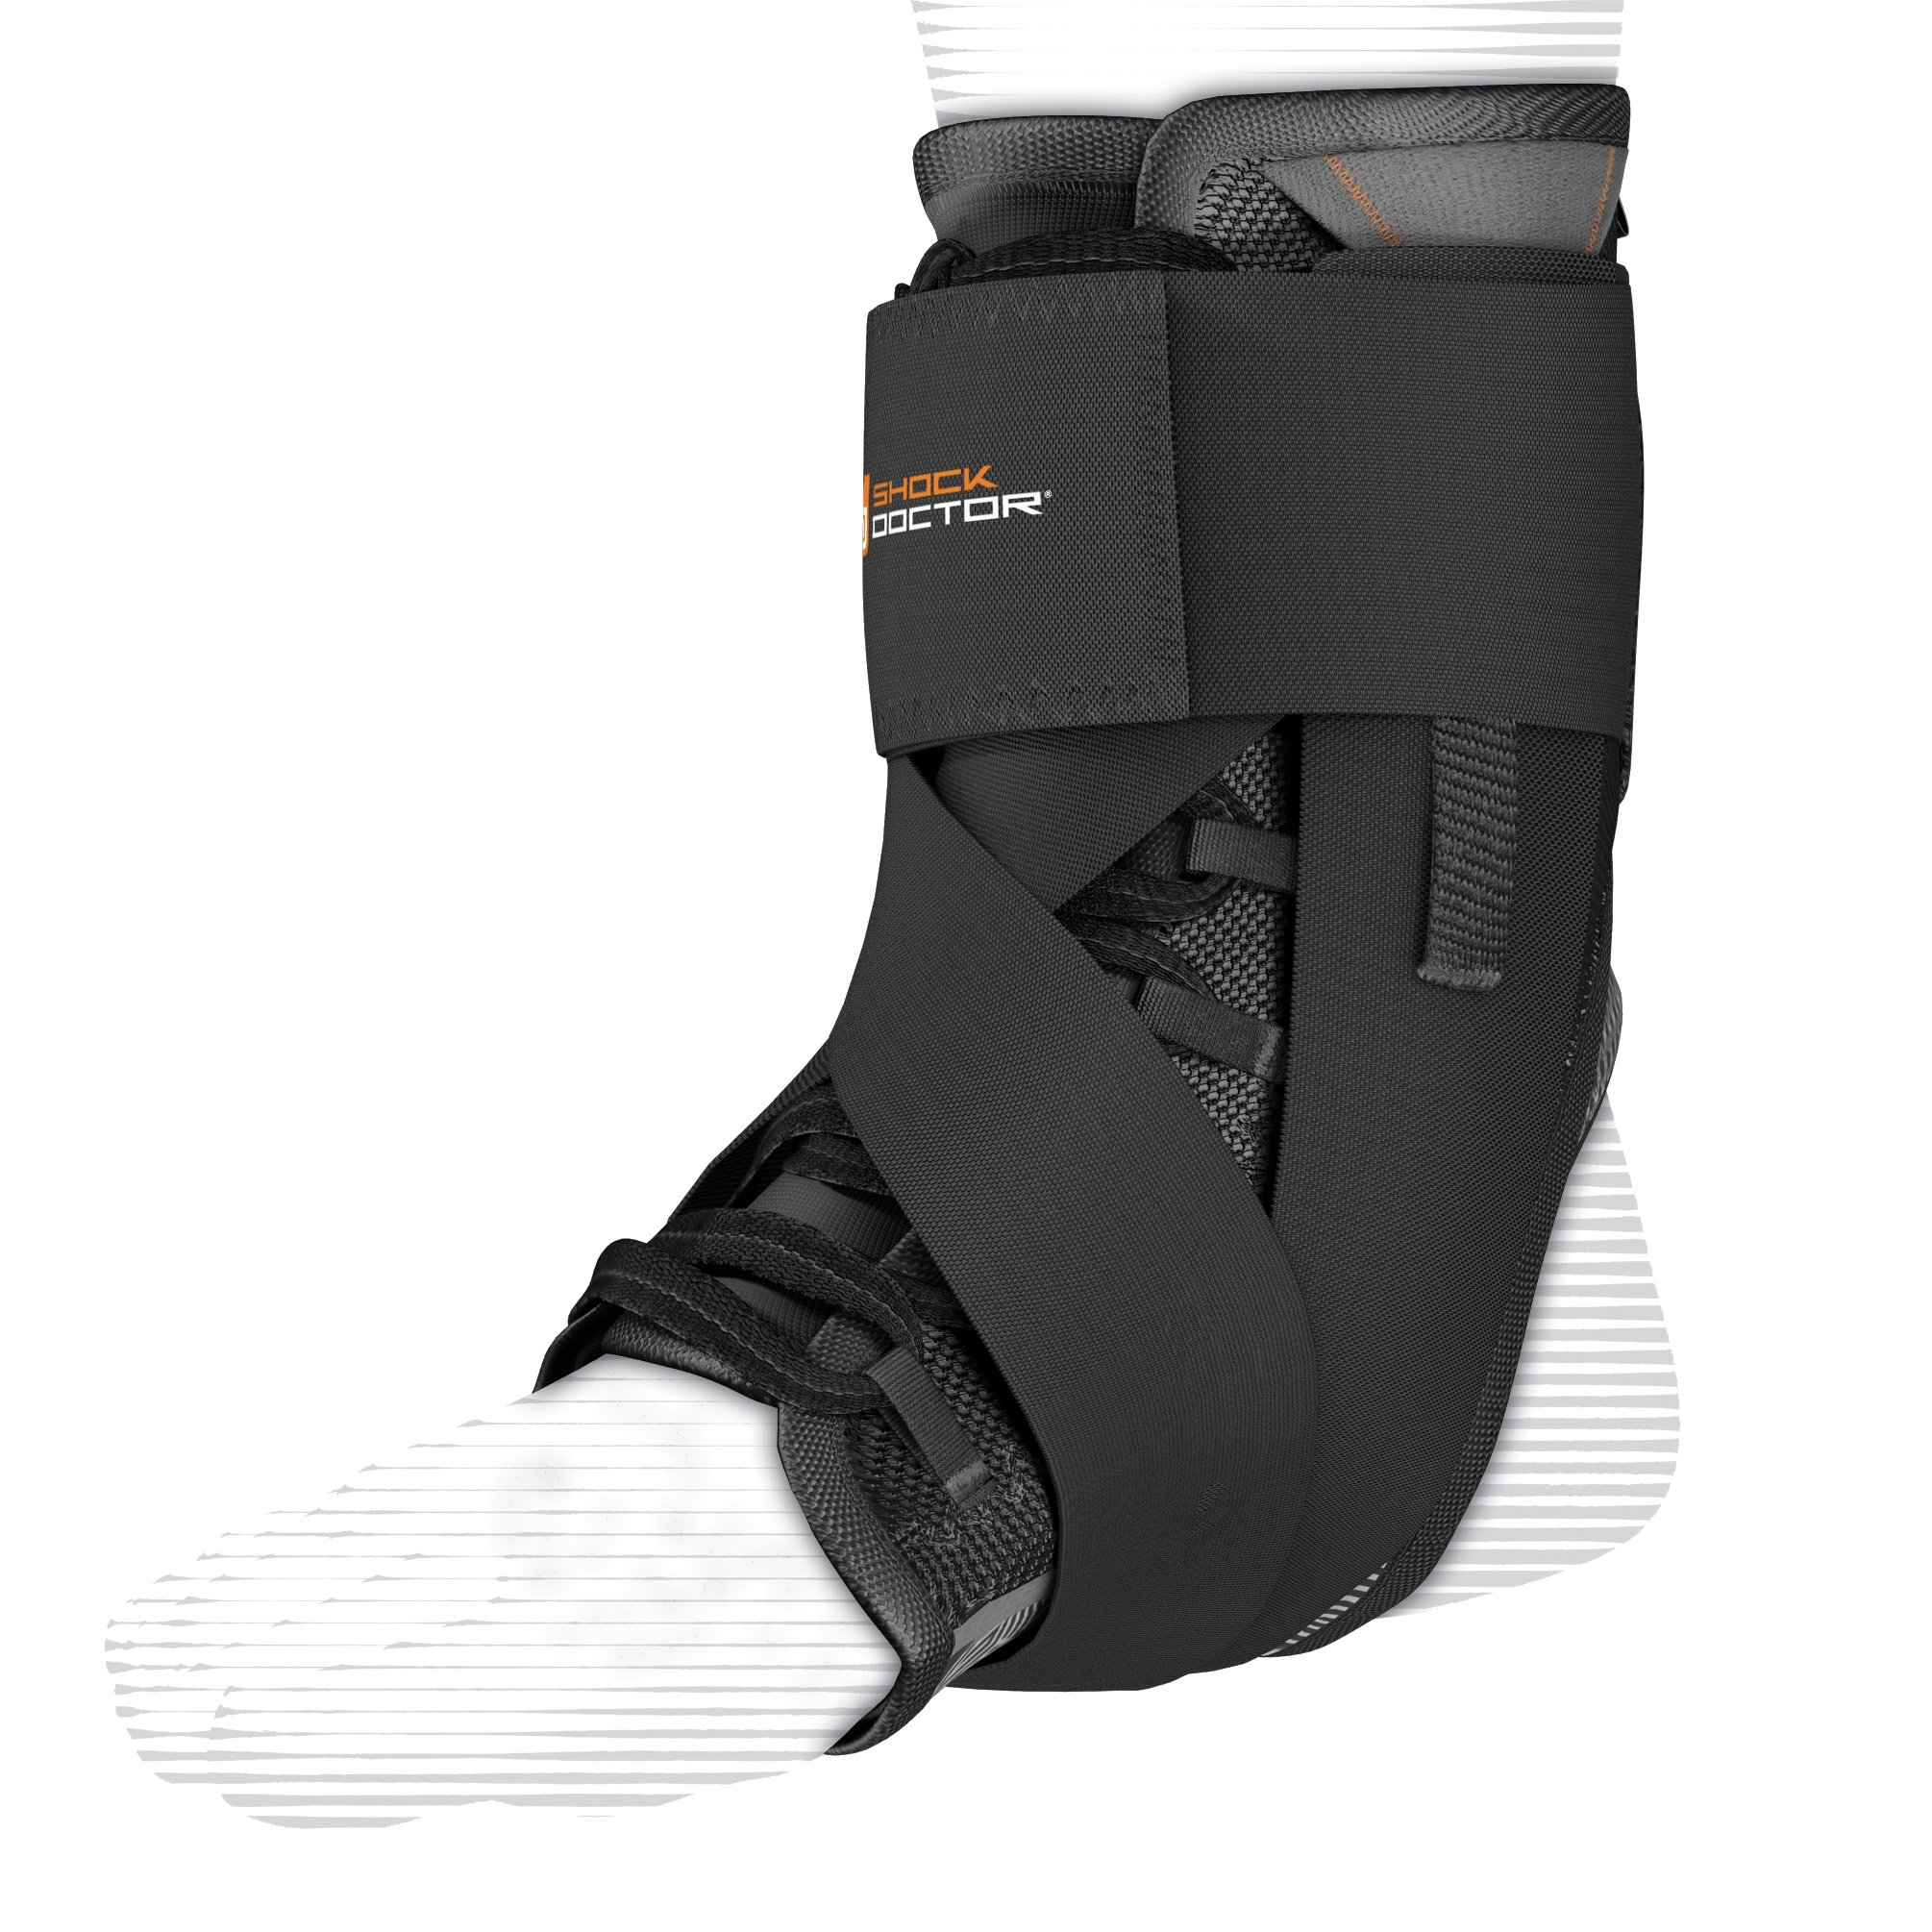 Shock Doctor Ultra Wrap Lace Ankle Support (Black, Medium, 8.5-9) by Shock Doctor